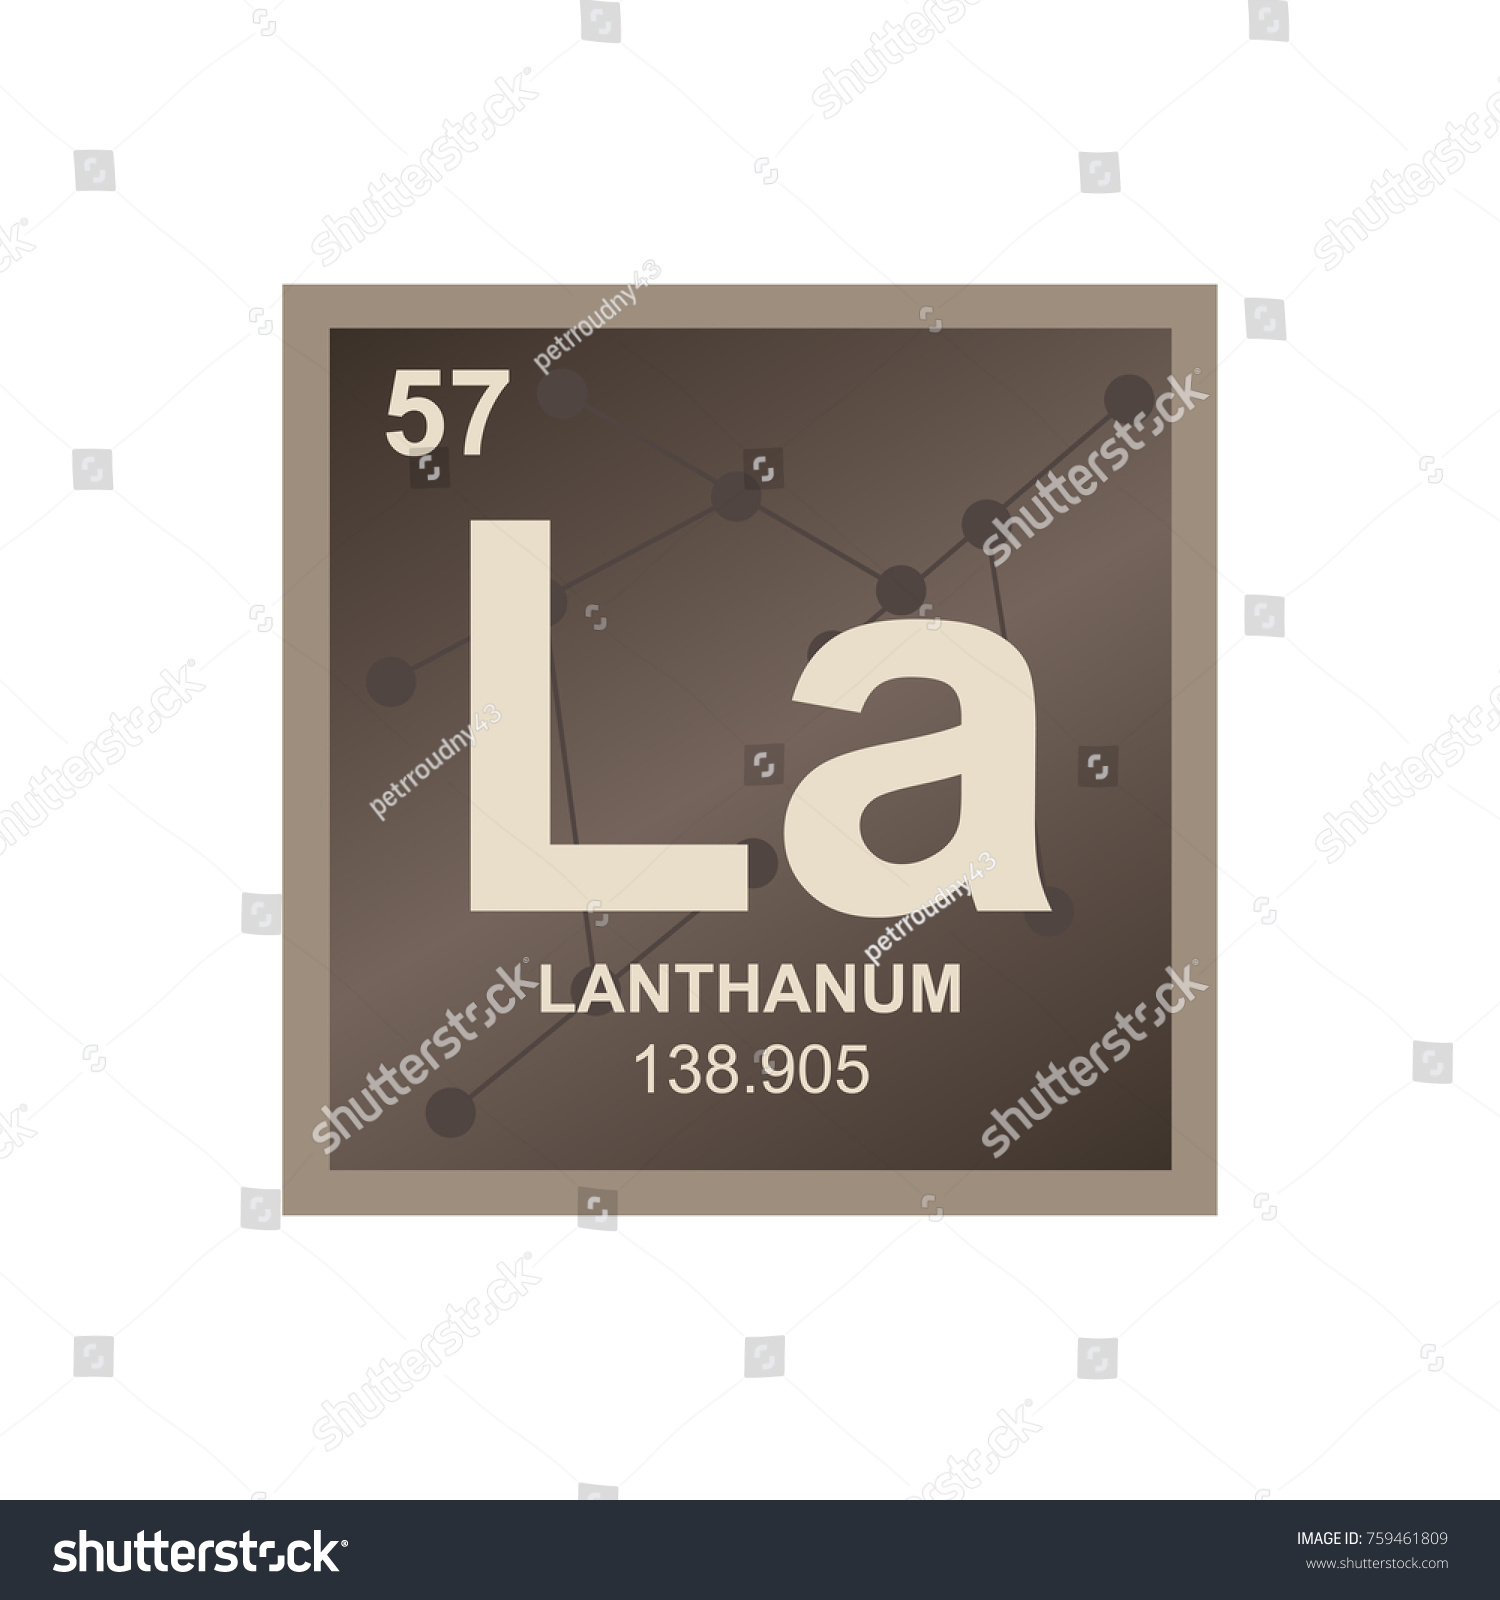 Gold in the periodic table gallery periodic table images what is the symbol for gold in the periodic table images what is the symbol for gamestrikefo Image collections